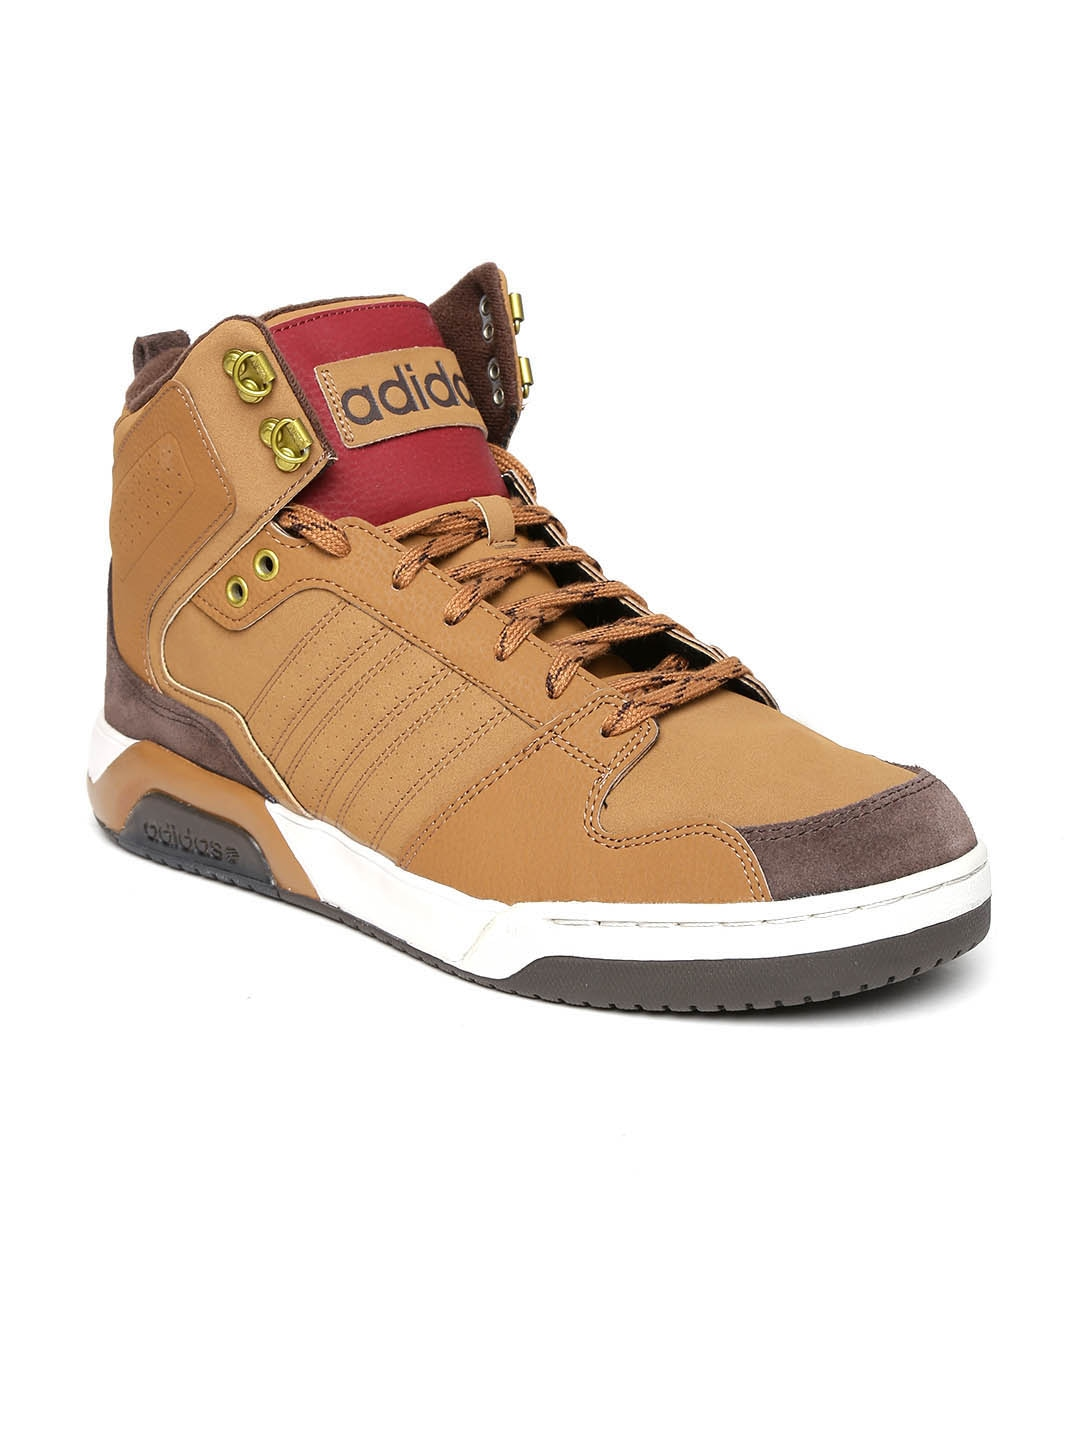 Adidas shoes for men casual